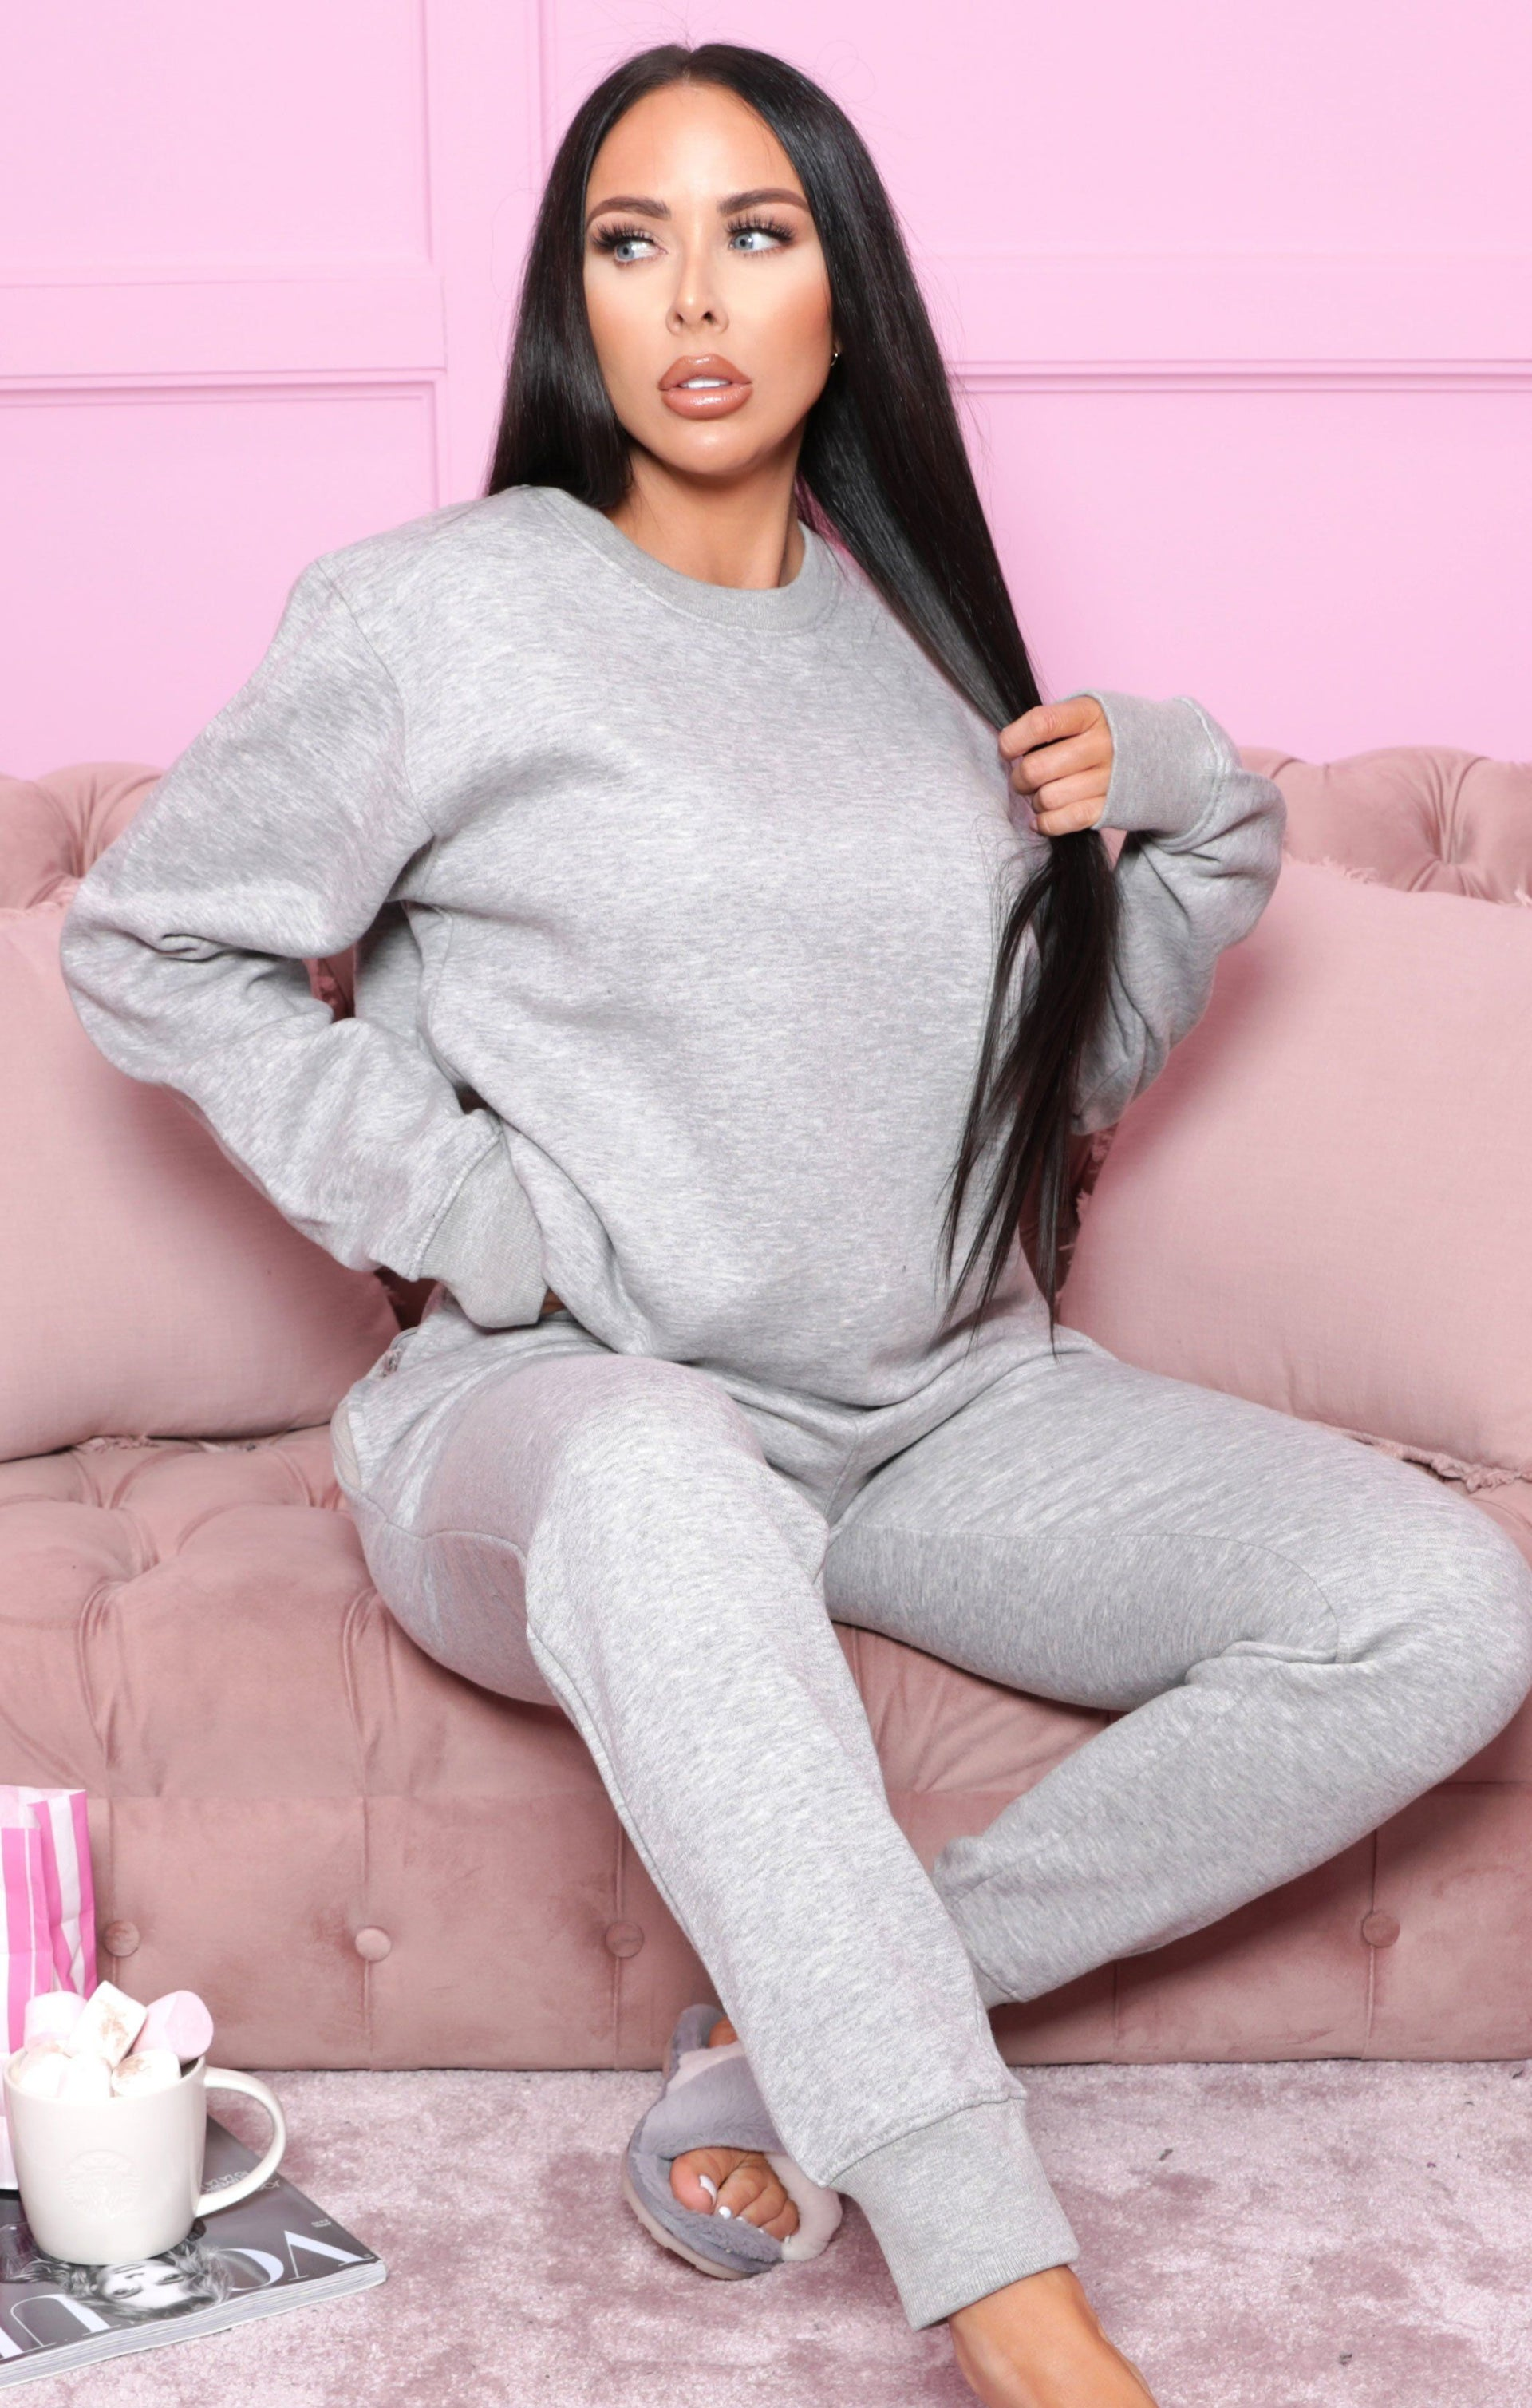 Grey Oversized Sweatshirt Joggers Loungewear Set - Christina FL233